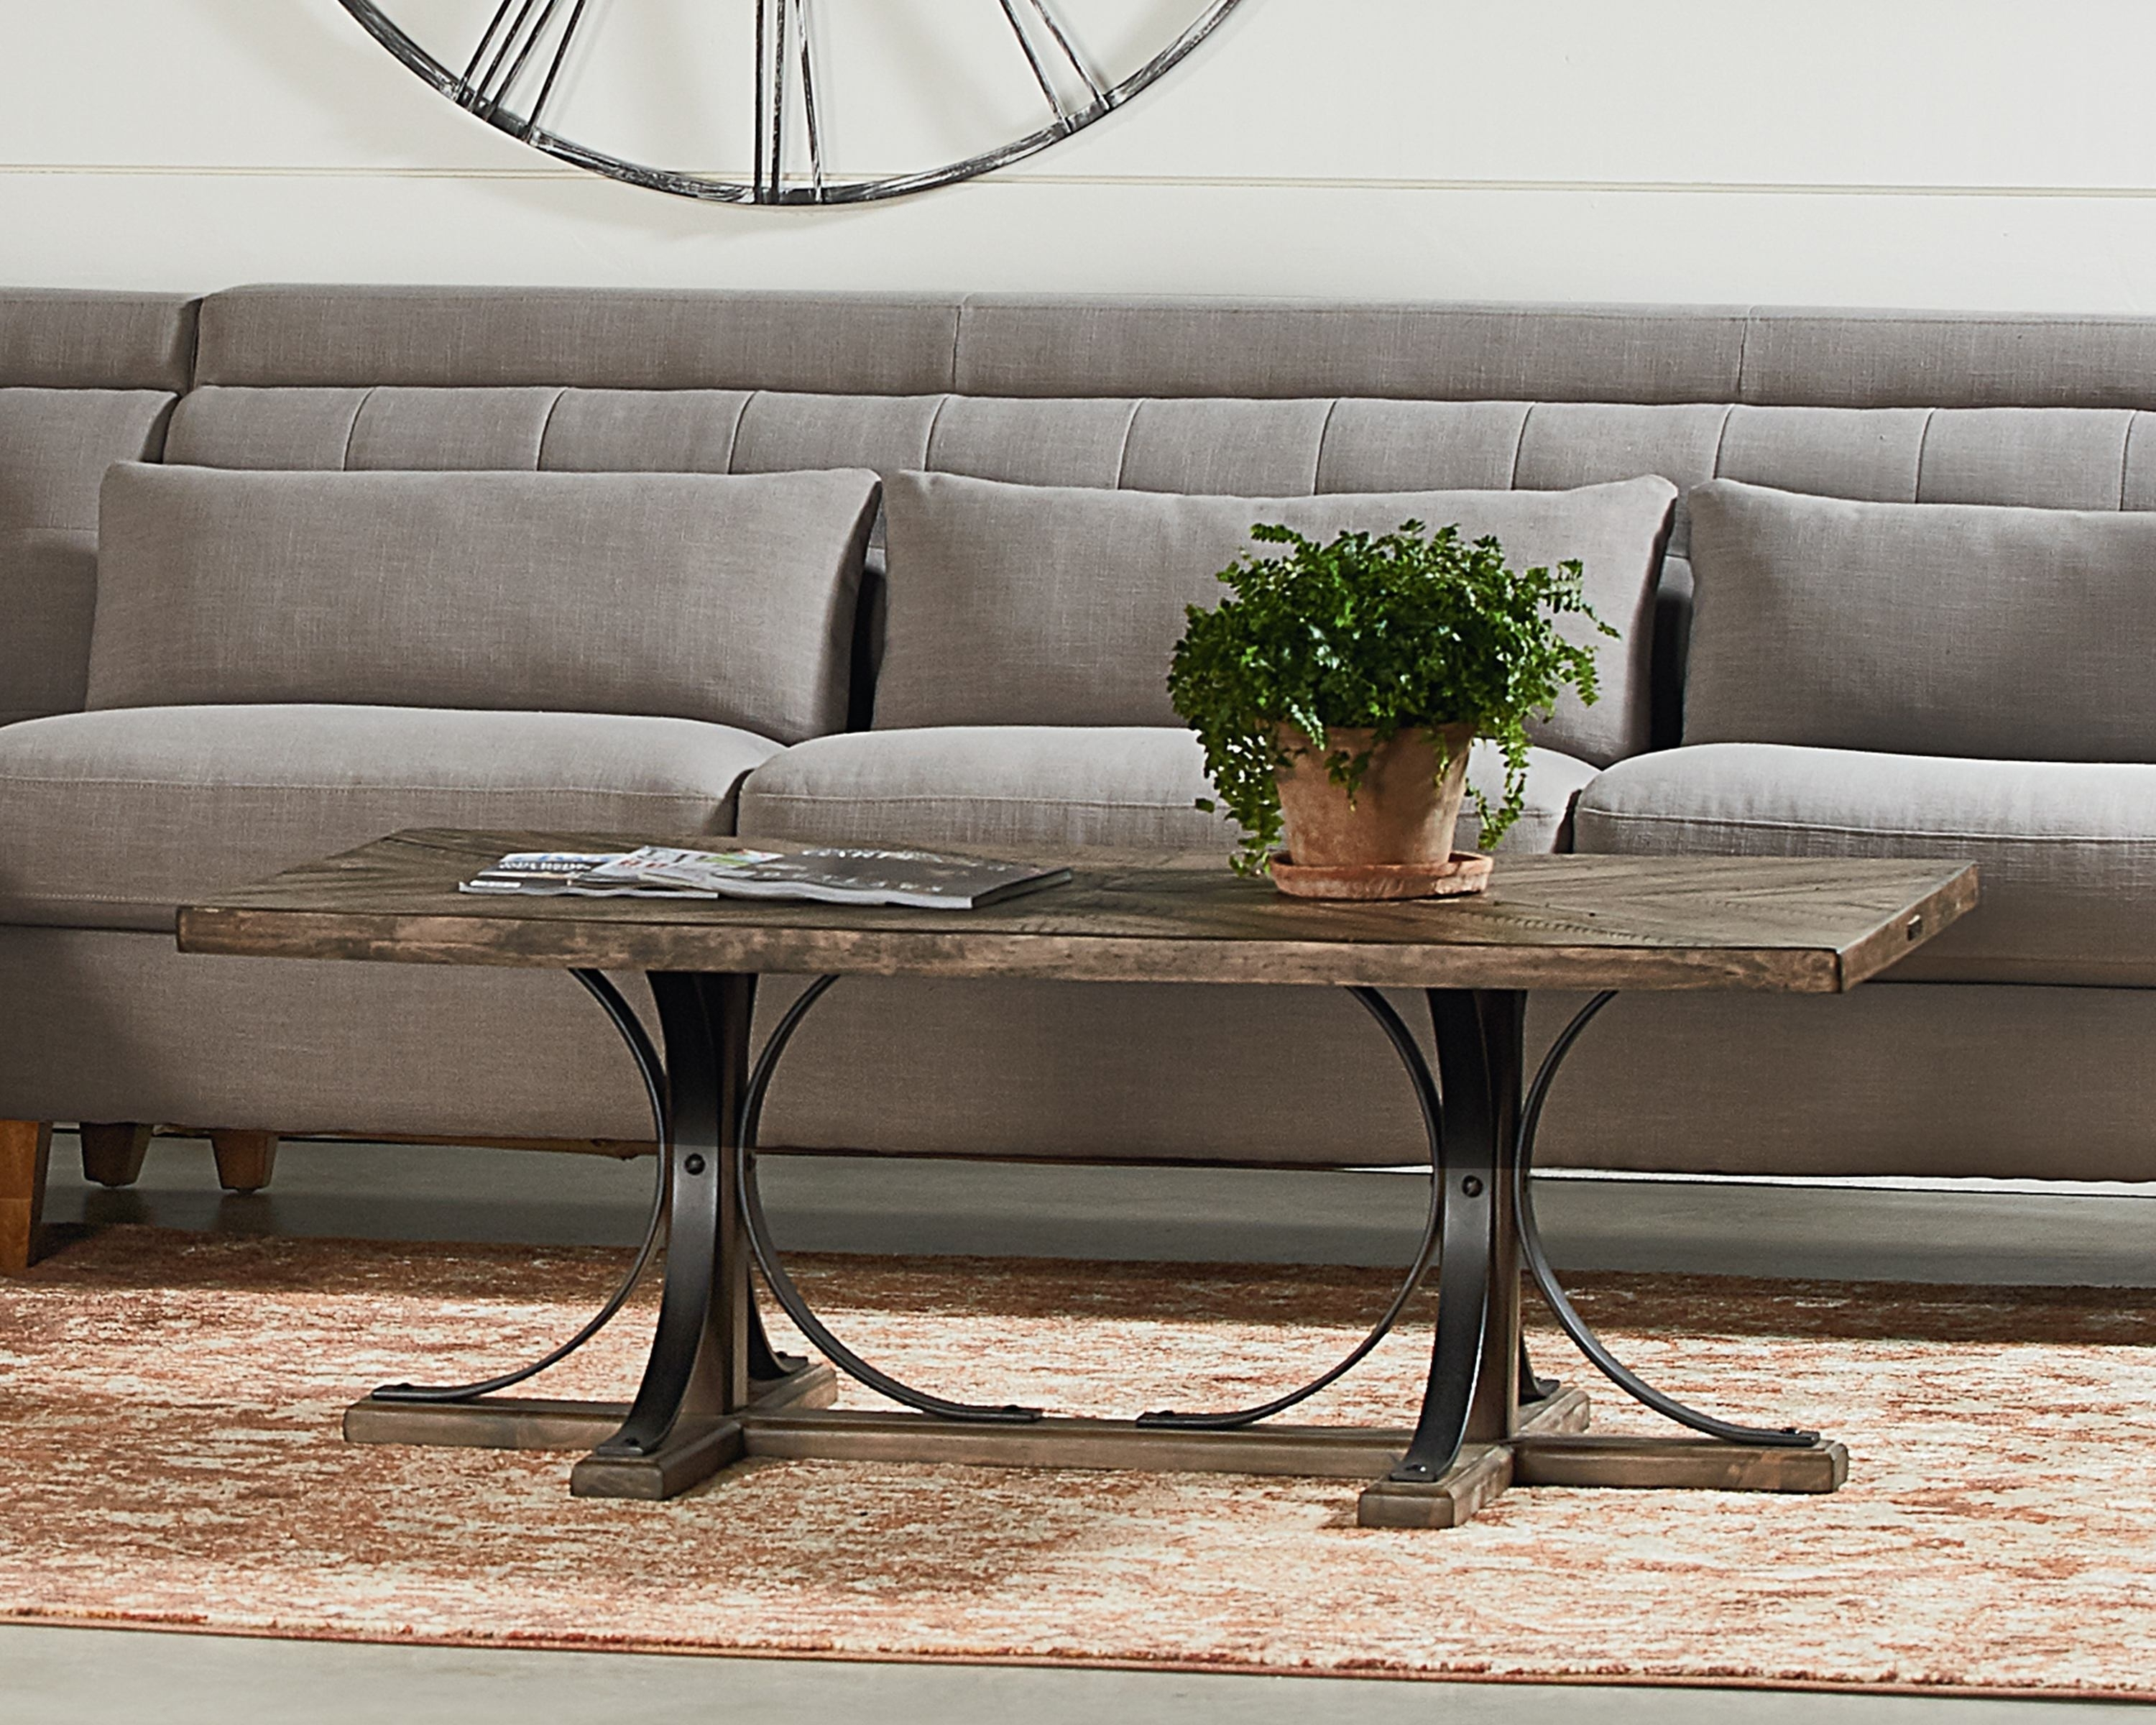 Iron Trestle Coffee Table – Magnolia Home For Most Current Magnolia Home Shop Floor Dining Tables With Iron Trestle (Image 5 of 20)